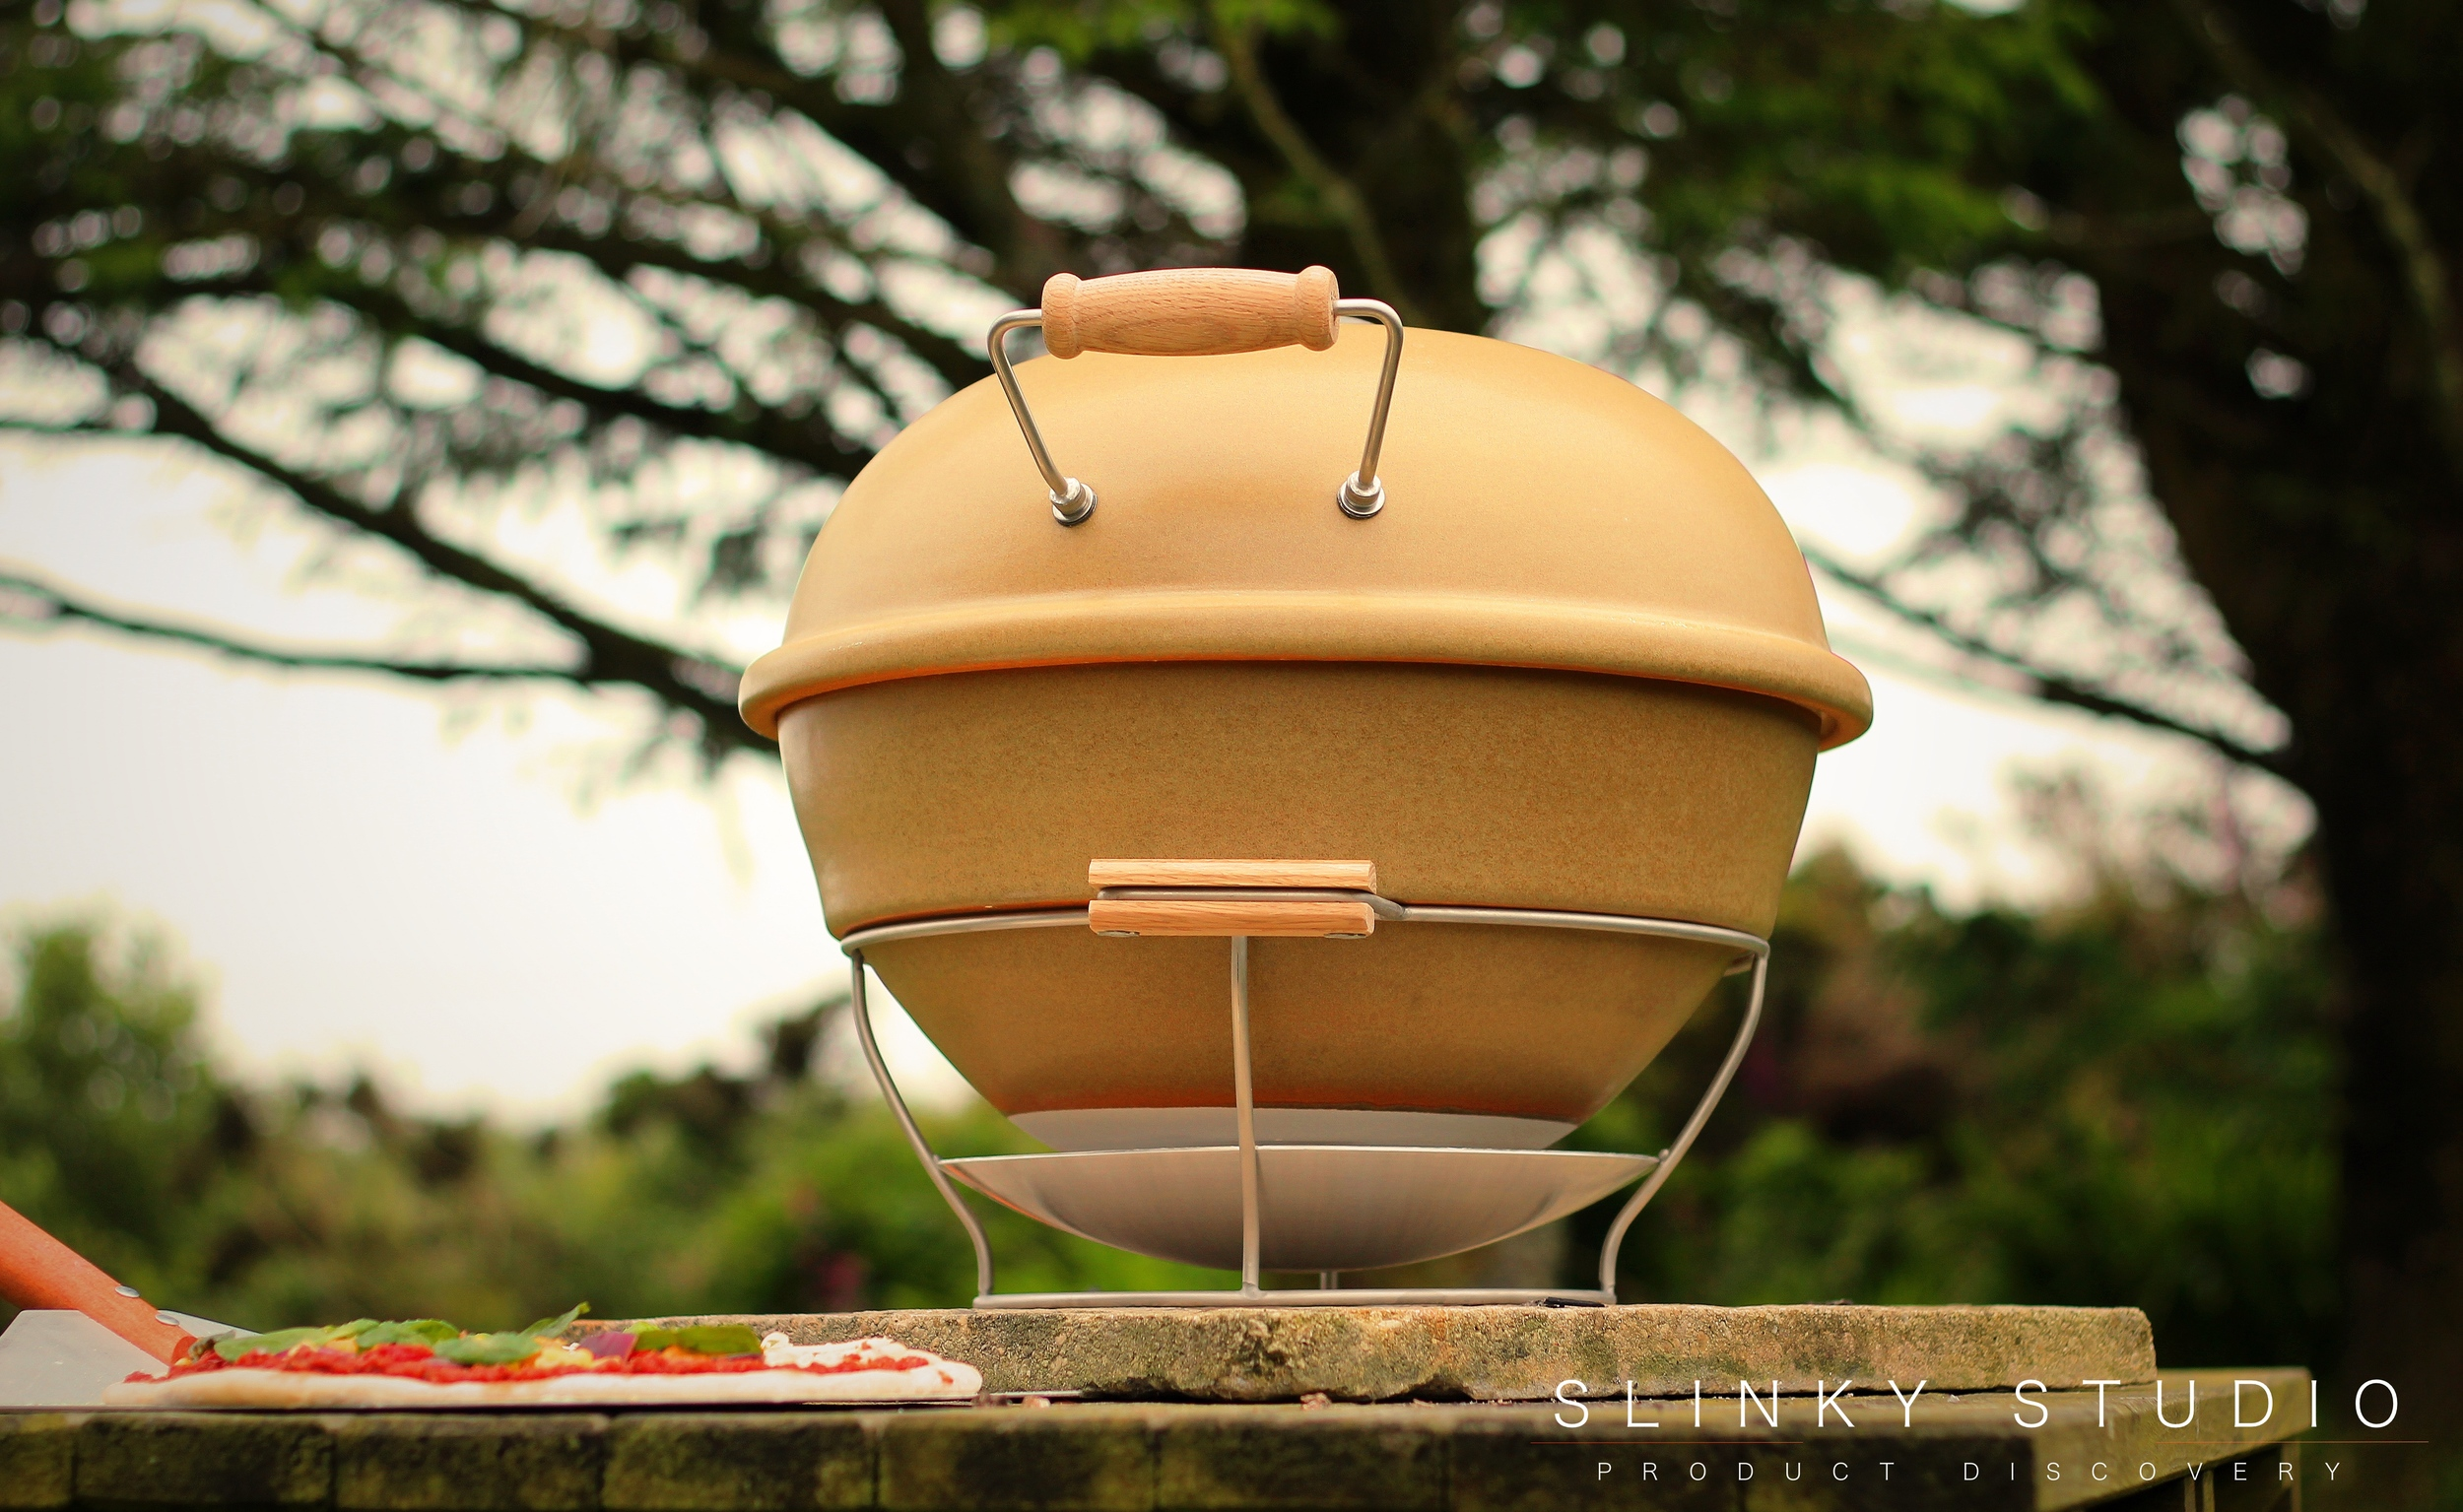 Grenadier Earth Fire Pizza Oven Handle Side View Looking up into Sky.jpg